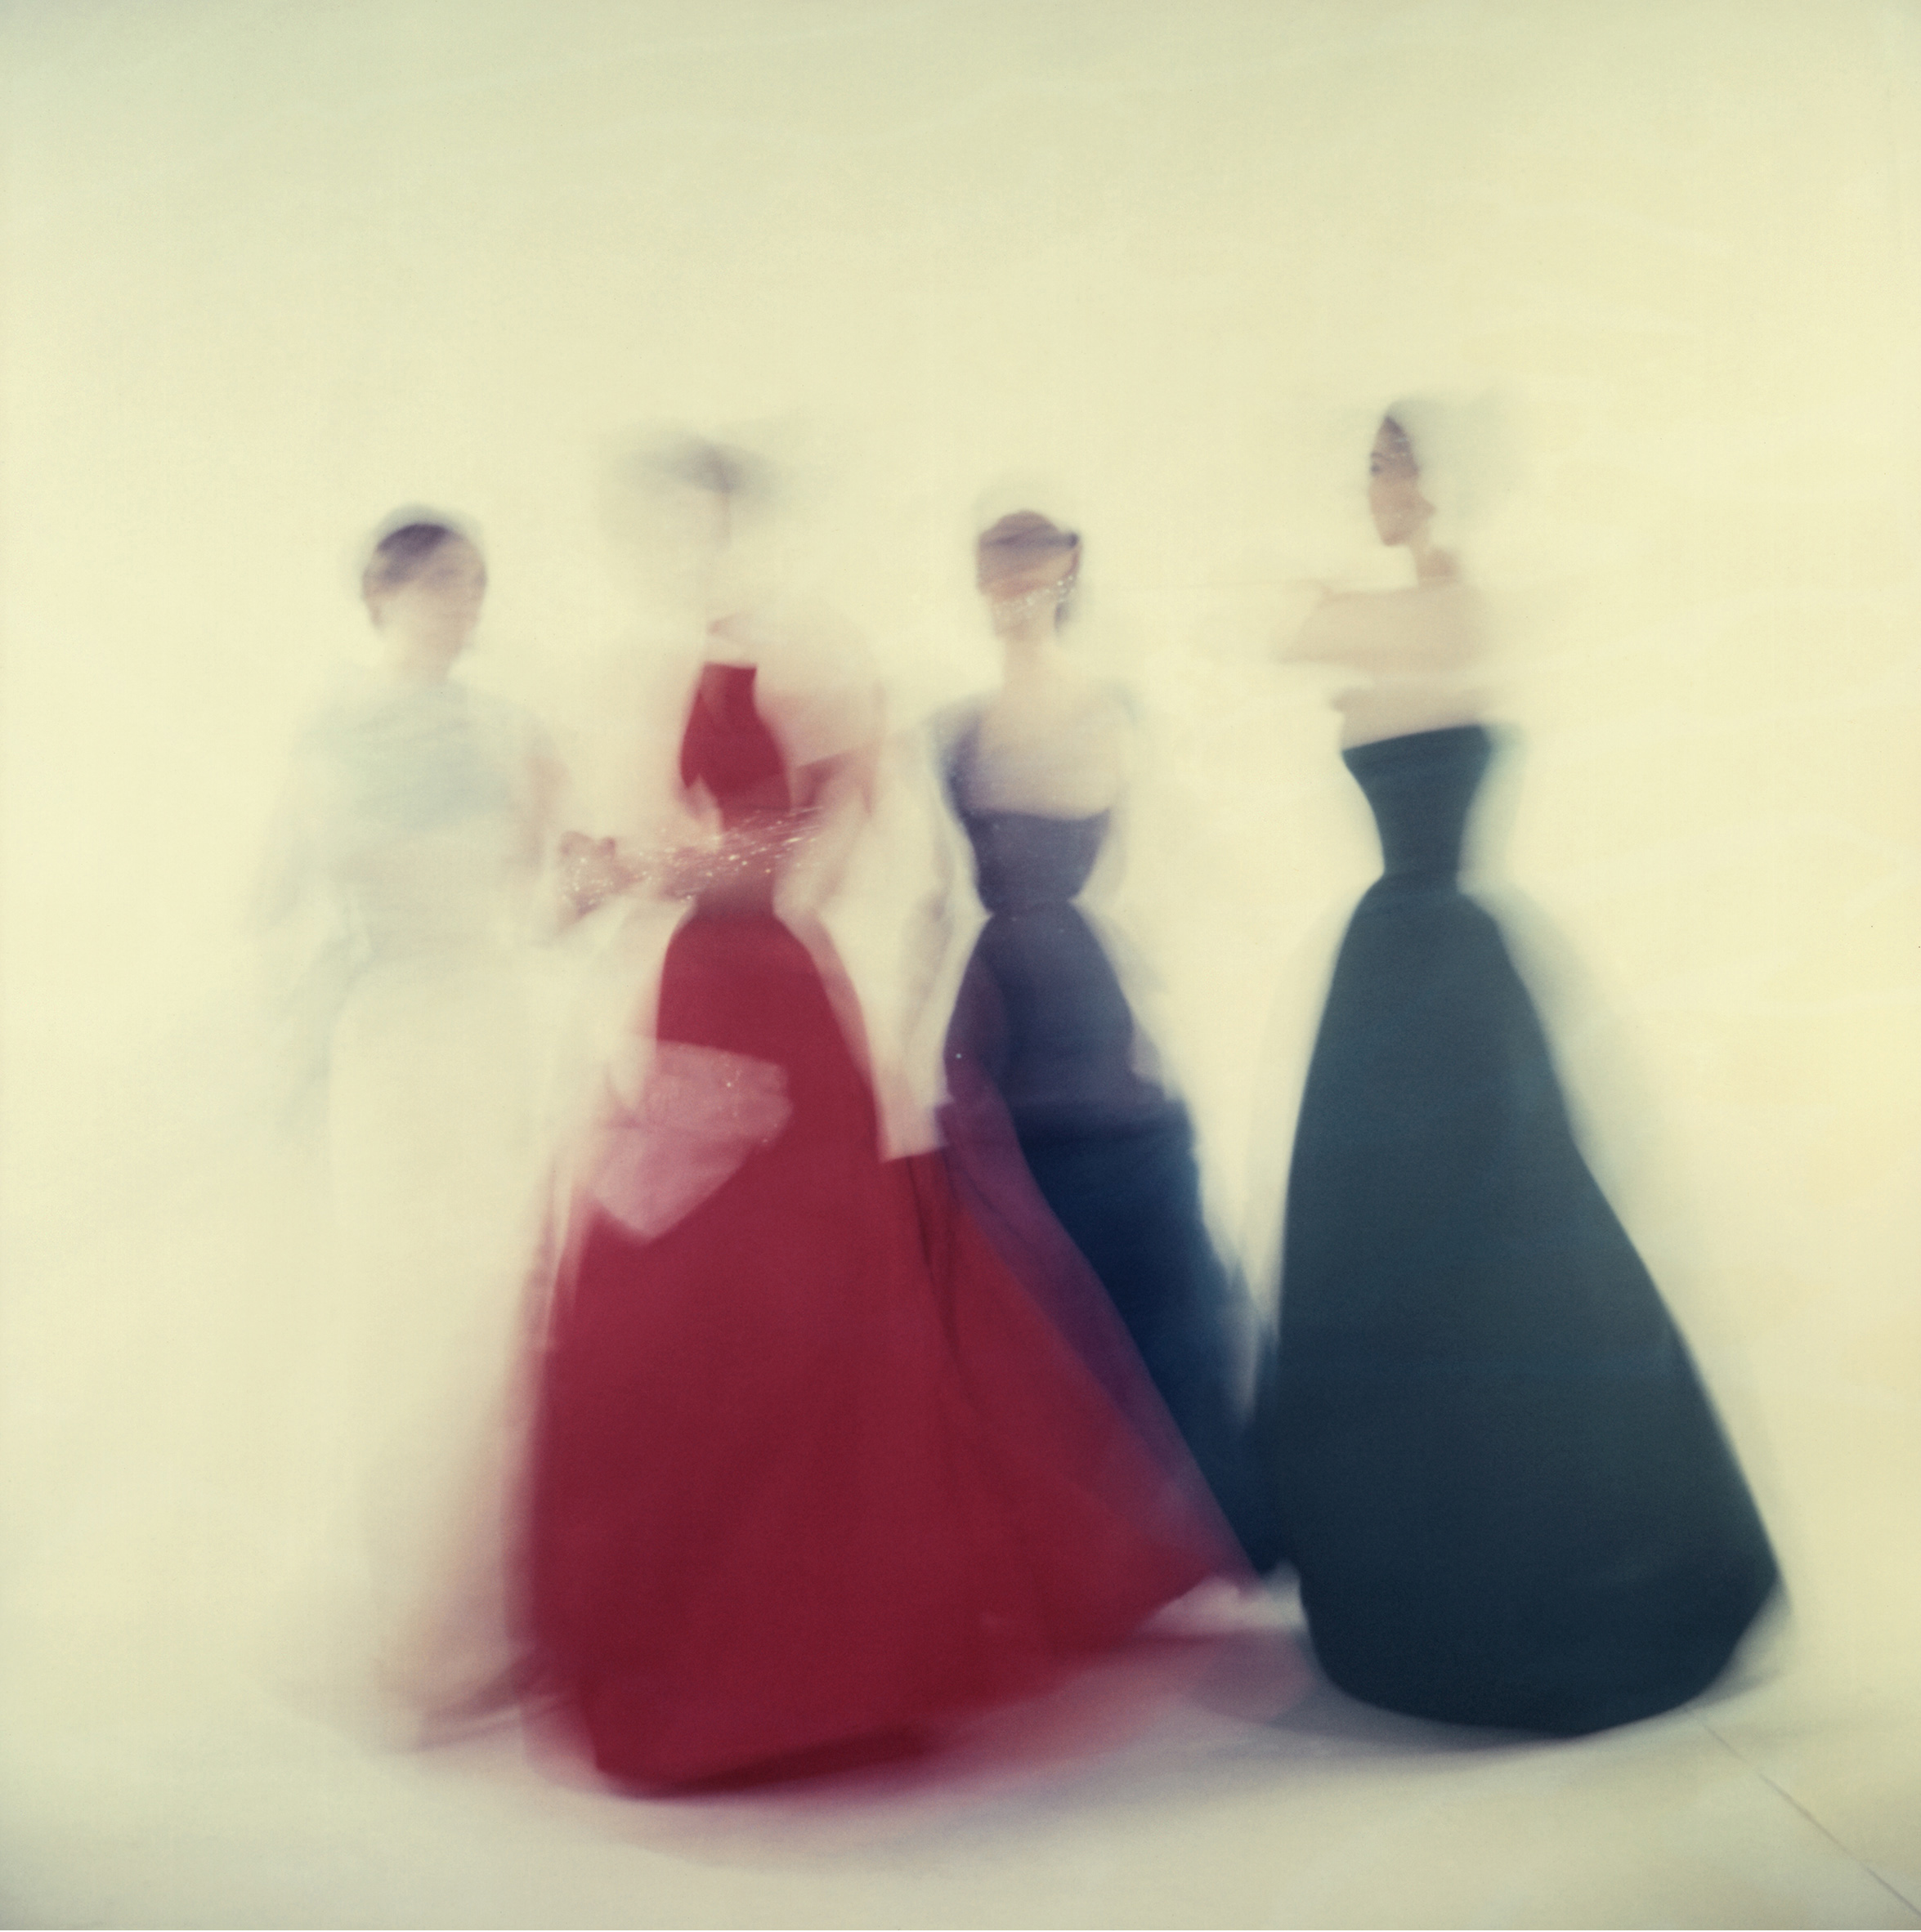 Sin título, por Clifford Coffin, 1954.